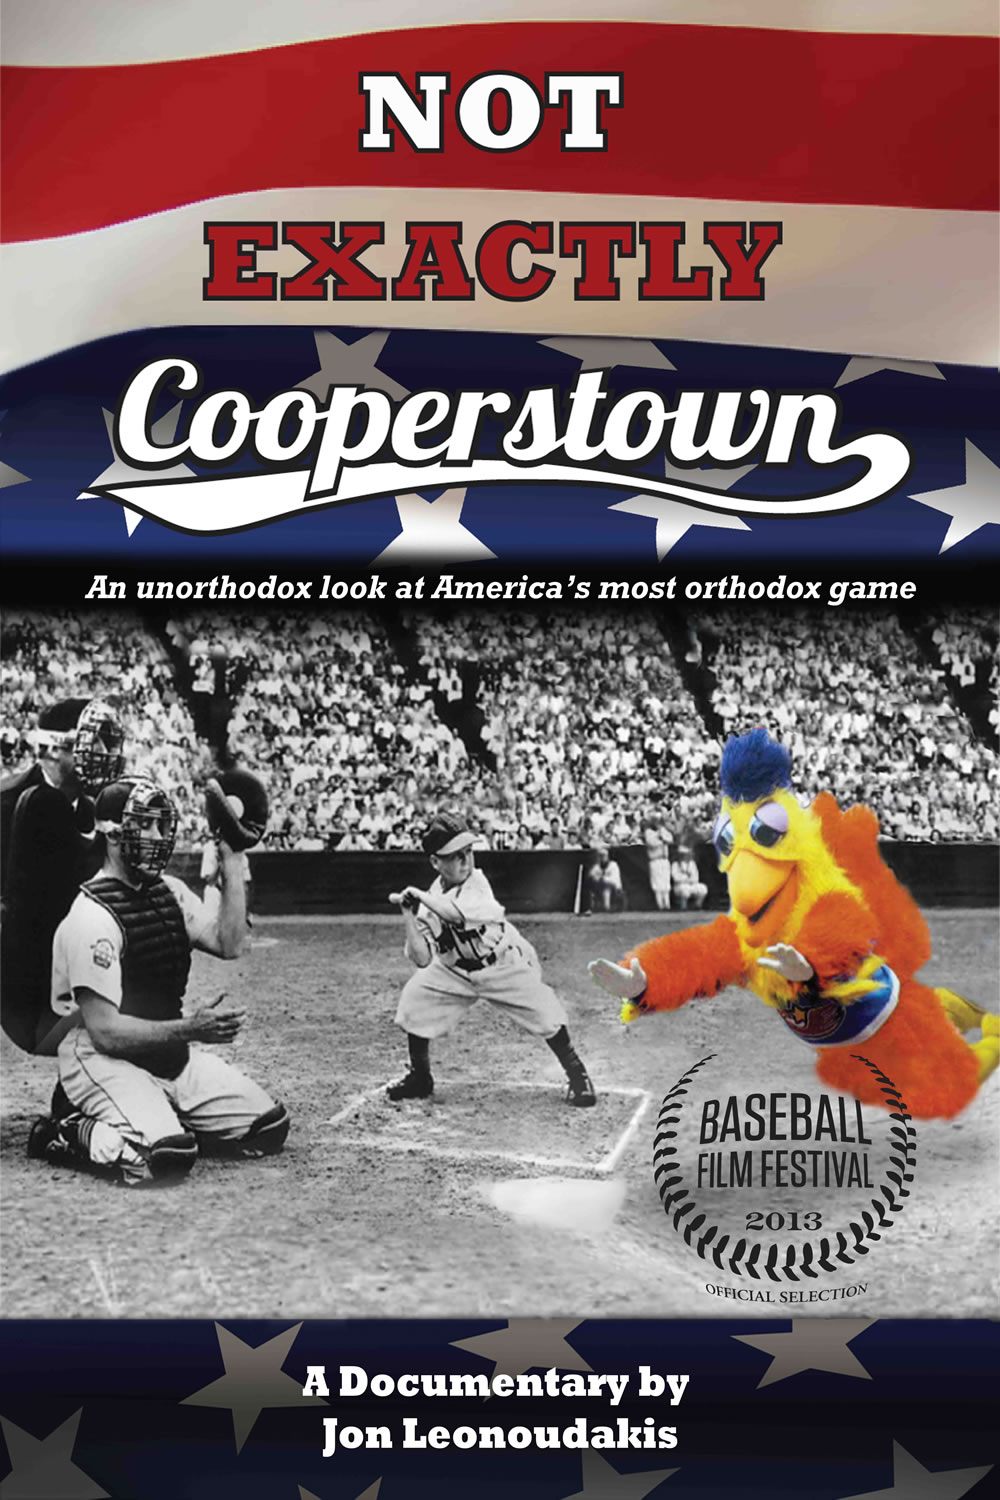 Not The Baseball Pitcher: NOT EXACTLY COOPERSTOWN (2012)